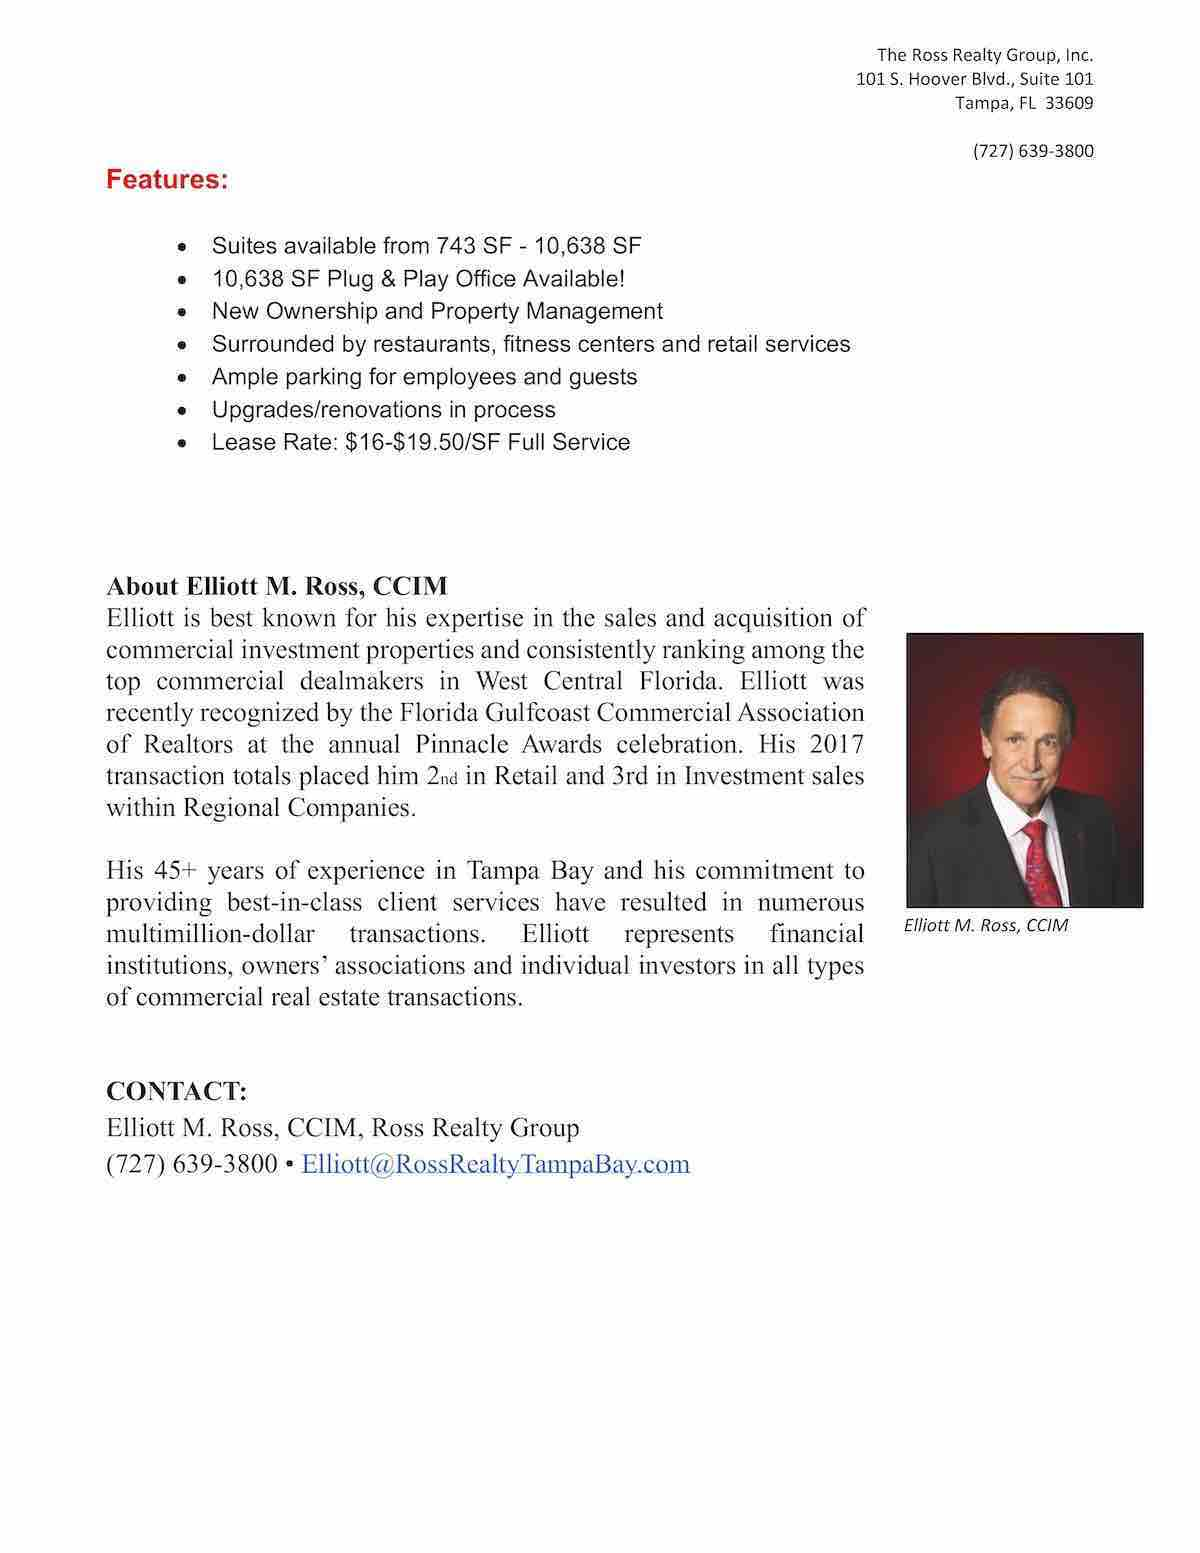 Tampa Commercial Real Estate - PR-20200302-RRG-NewListing-PR-Gulf South Center P2